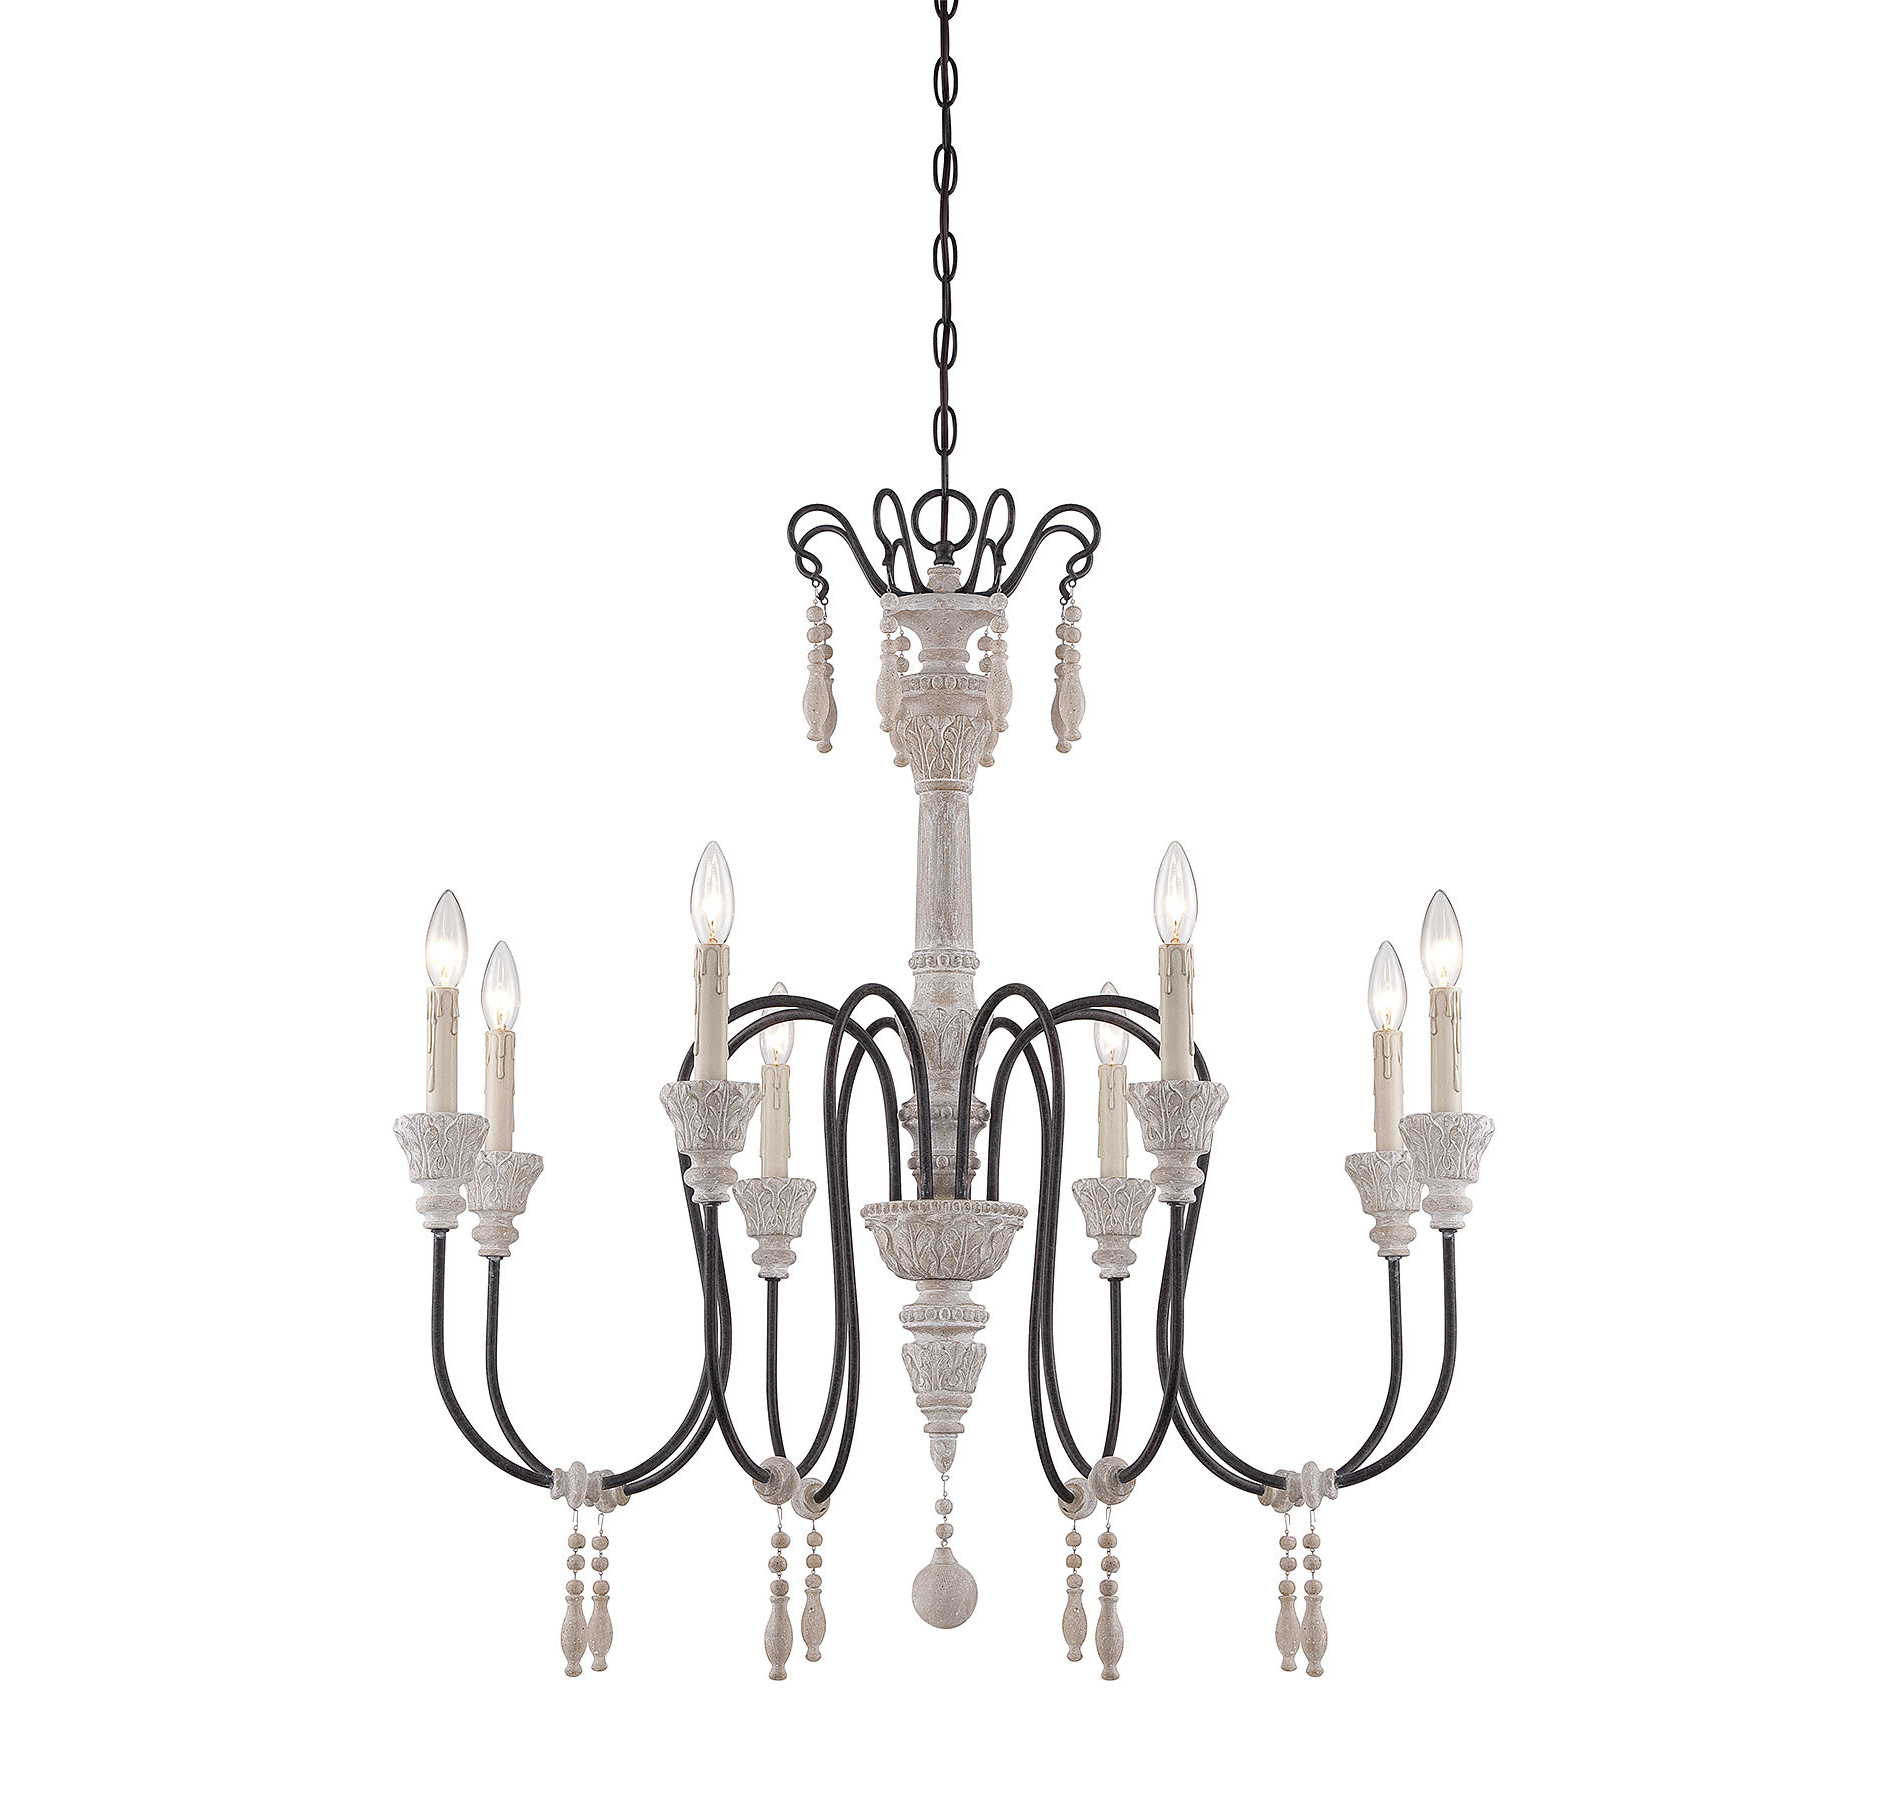 Bouchette Traditional 6-Light Candle Style Chandeliers intended for Preferred Ailsa 8-Light Candle Style Chandelier